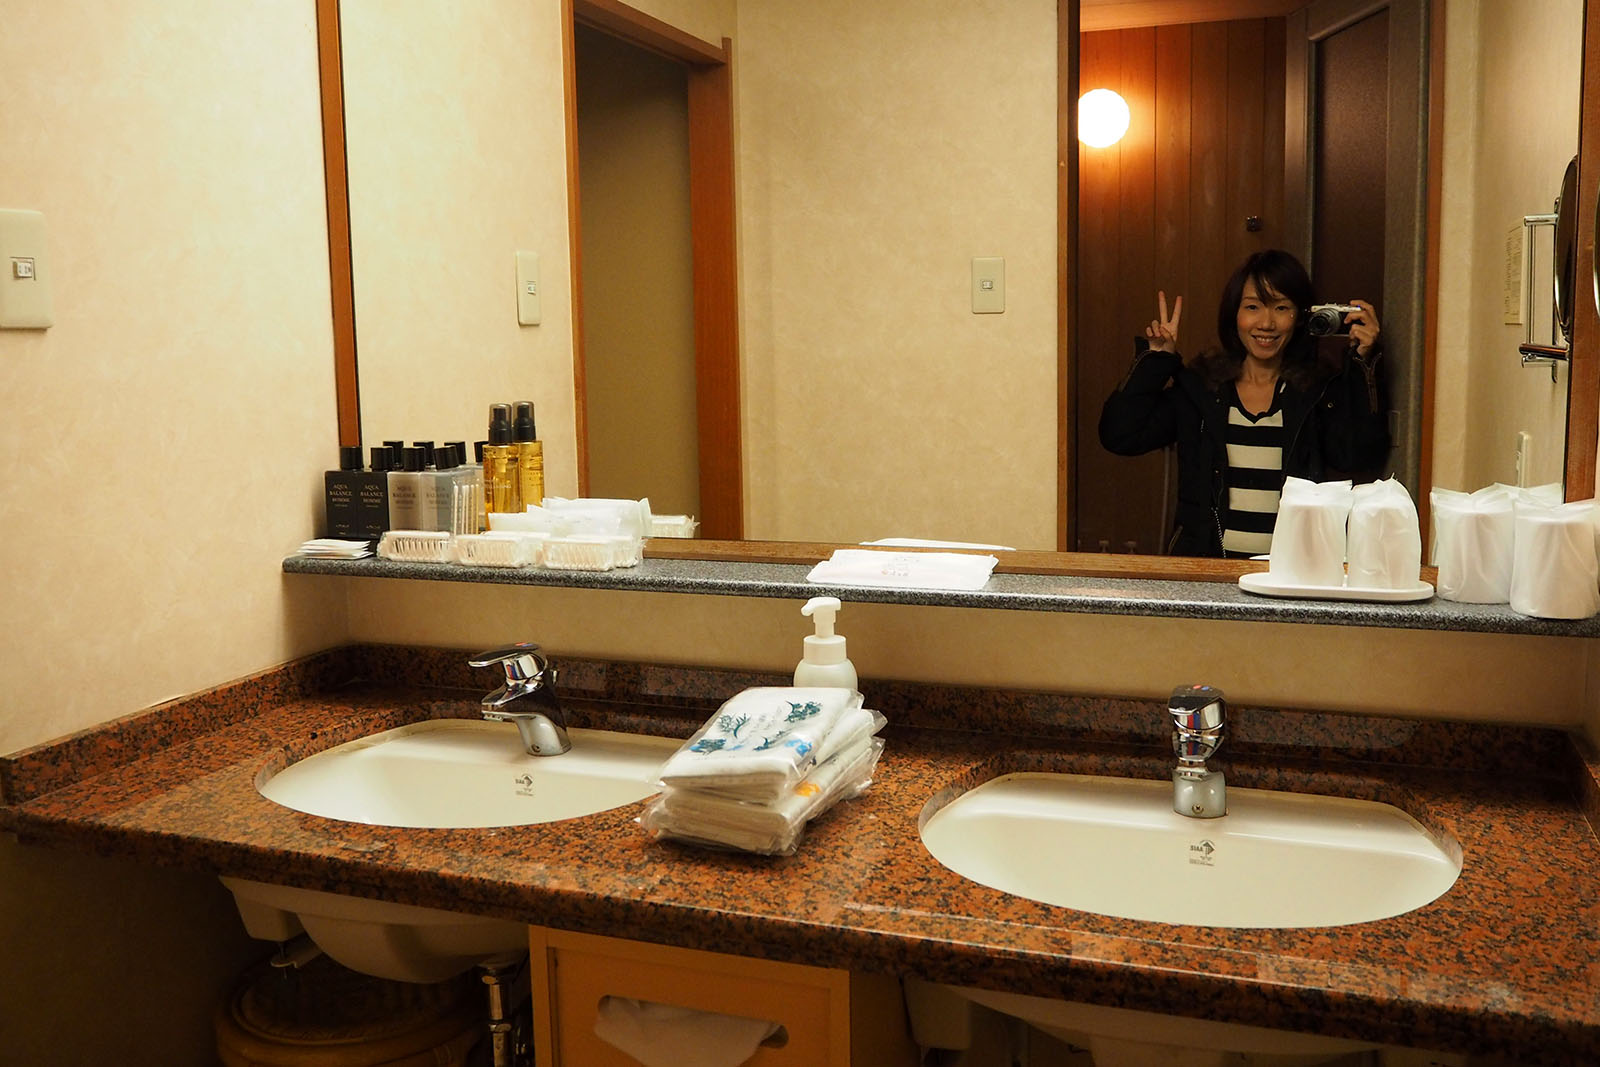 Staying at an Onsen Ryokan in Kyoto • The Petite Wanderess